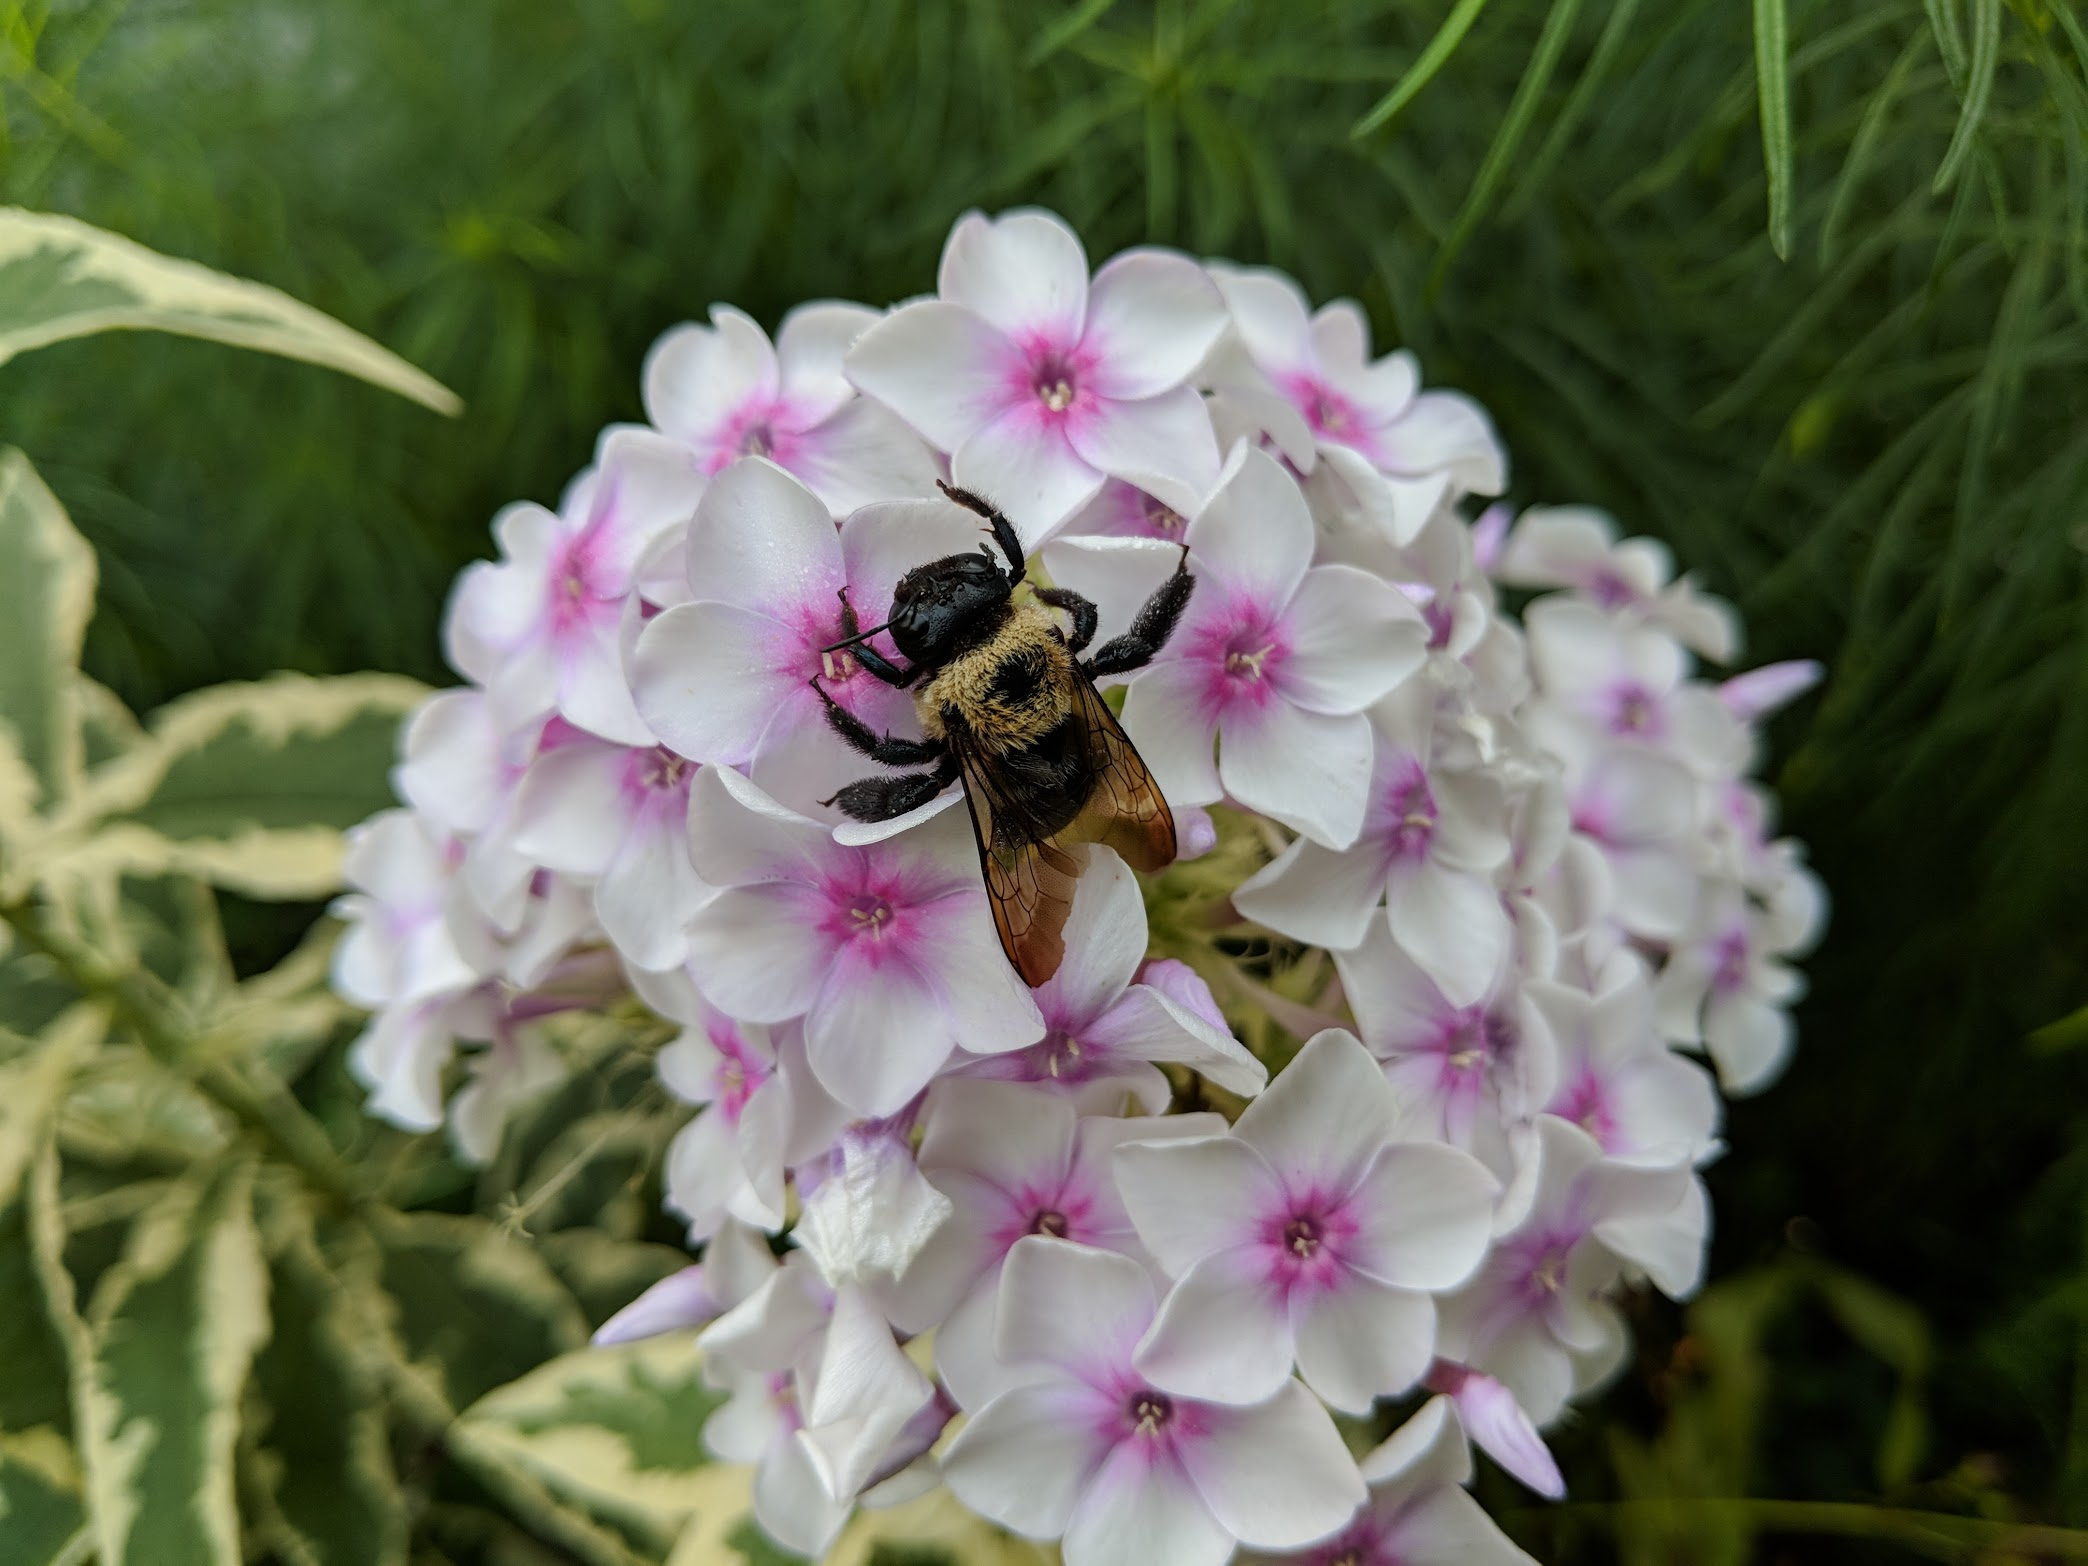 Bombus on phlox